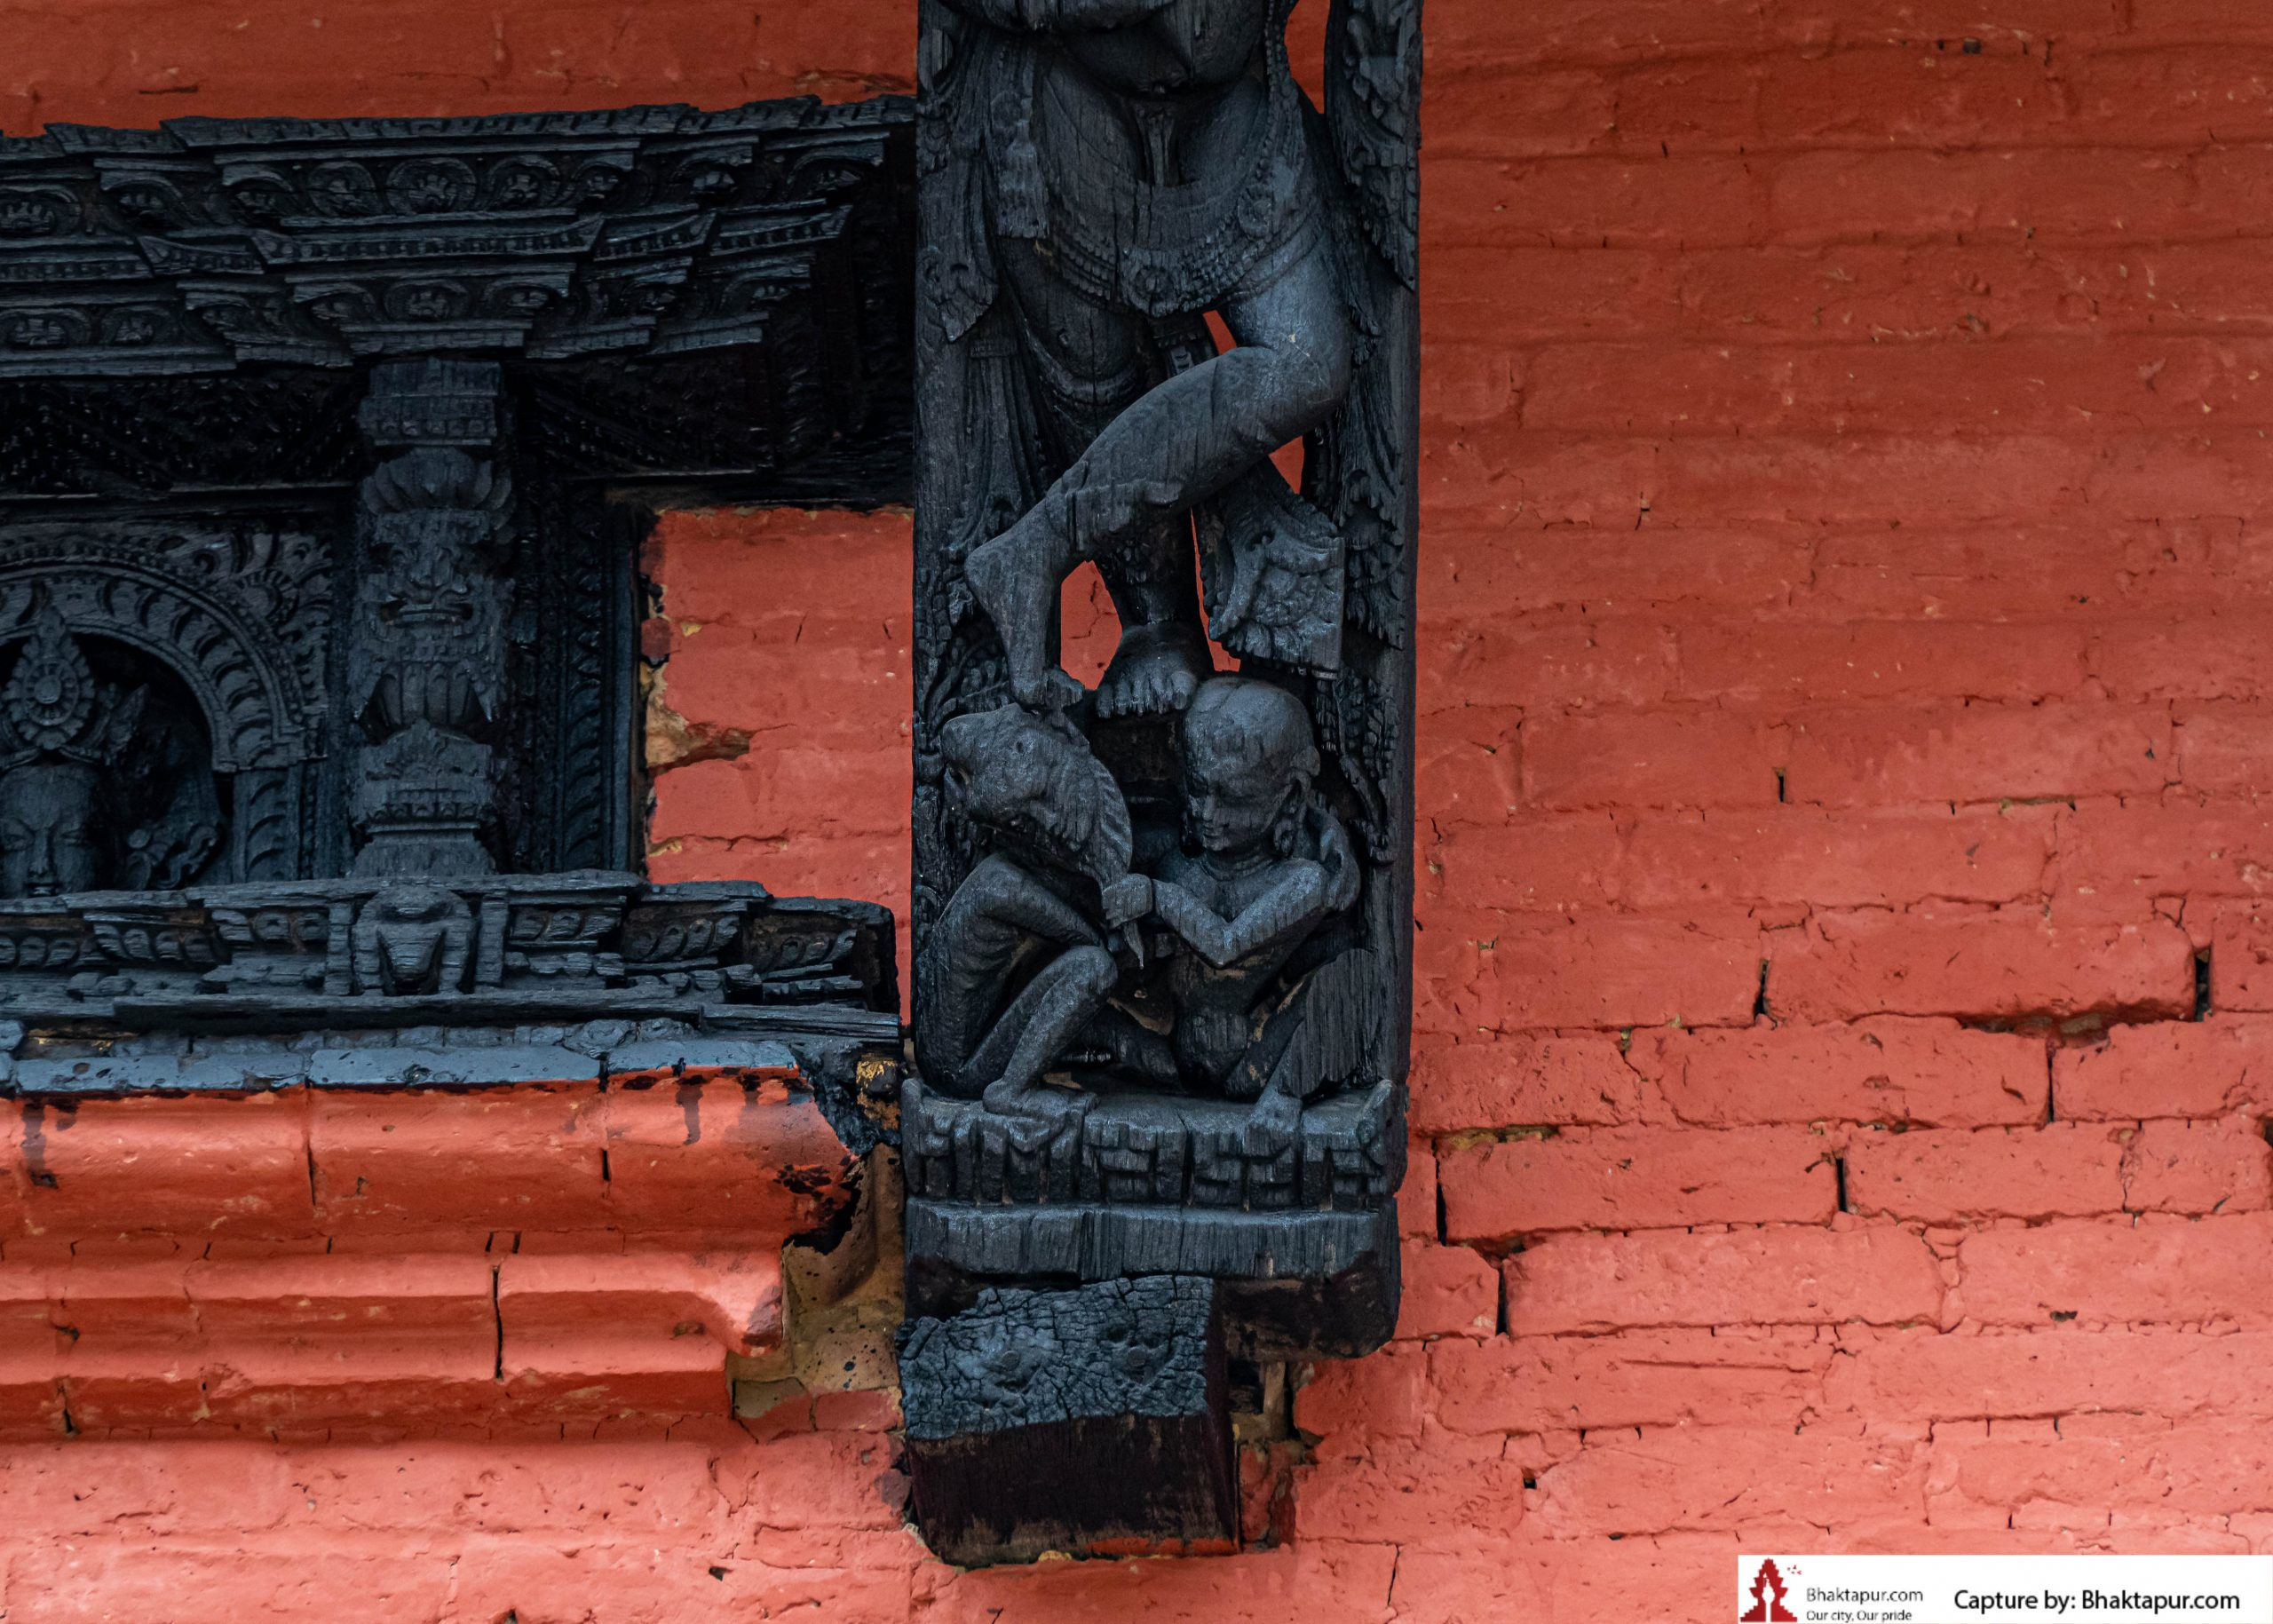 https://www.bhaktapur.com/wp-content/uploads/2021/08/erotic-carving-75-of-137-scaled.jpg